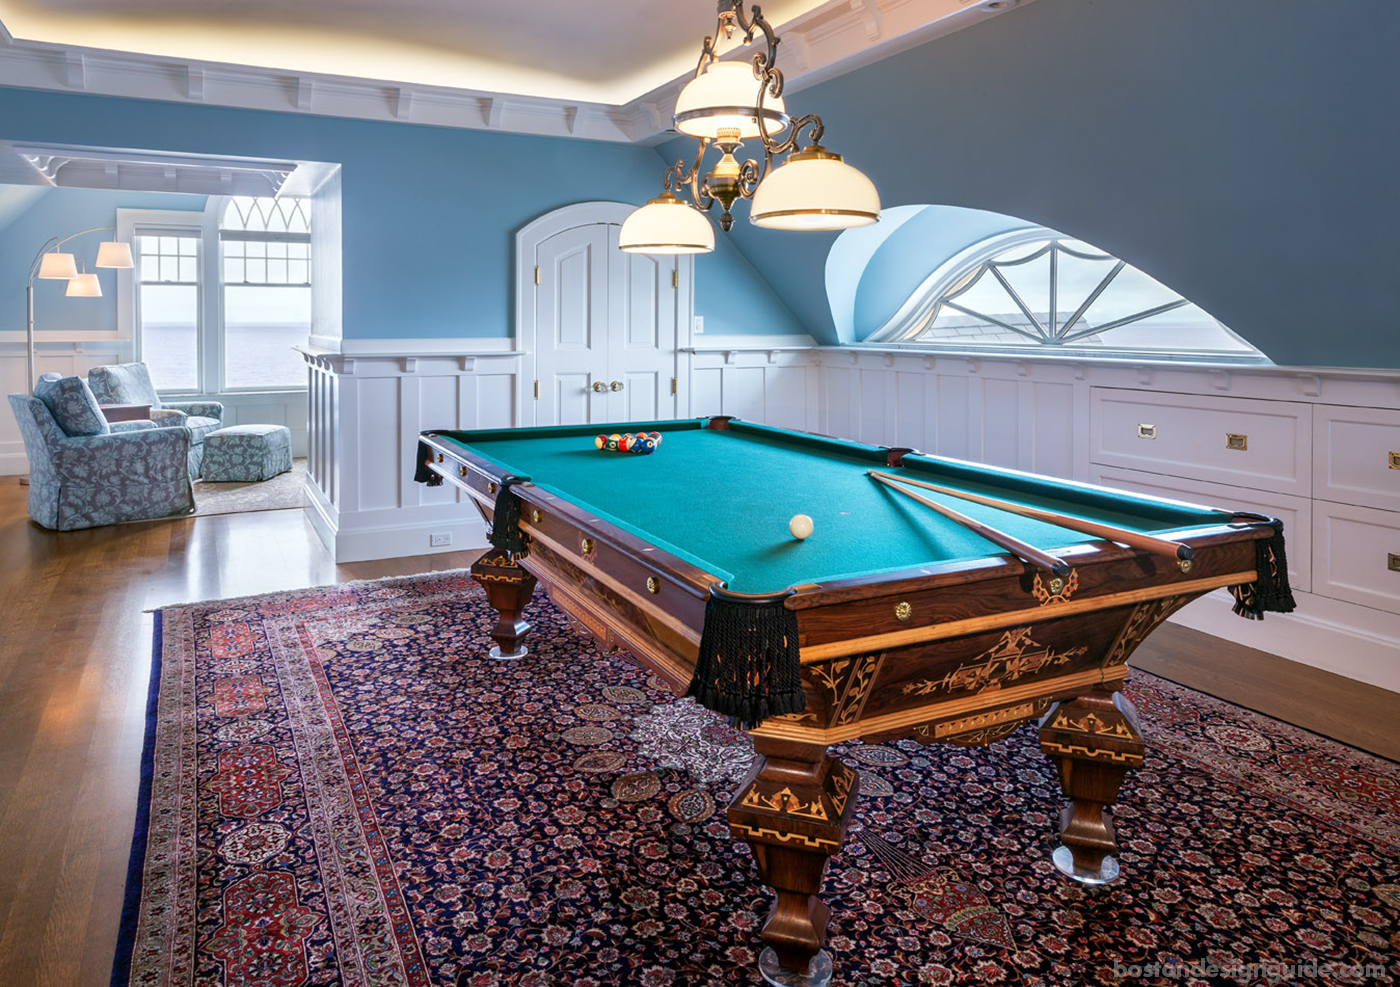 A MustSee Antique Pool Table Restoration By Boston Billiard - Pool table resurfacing